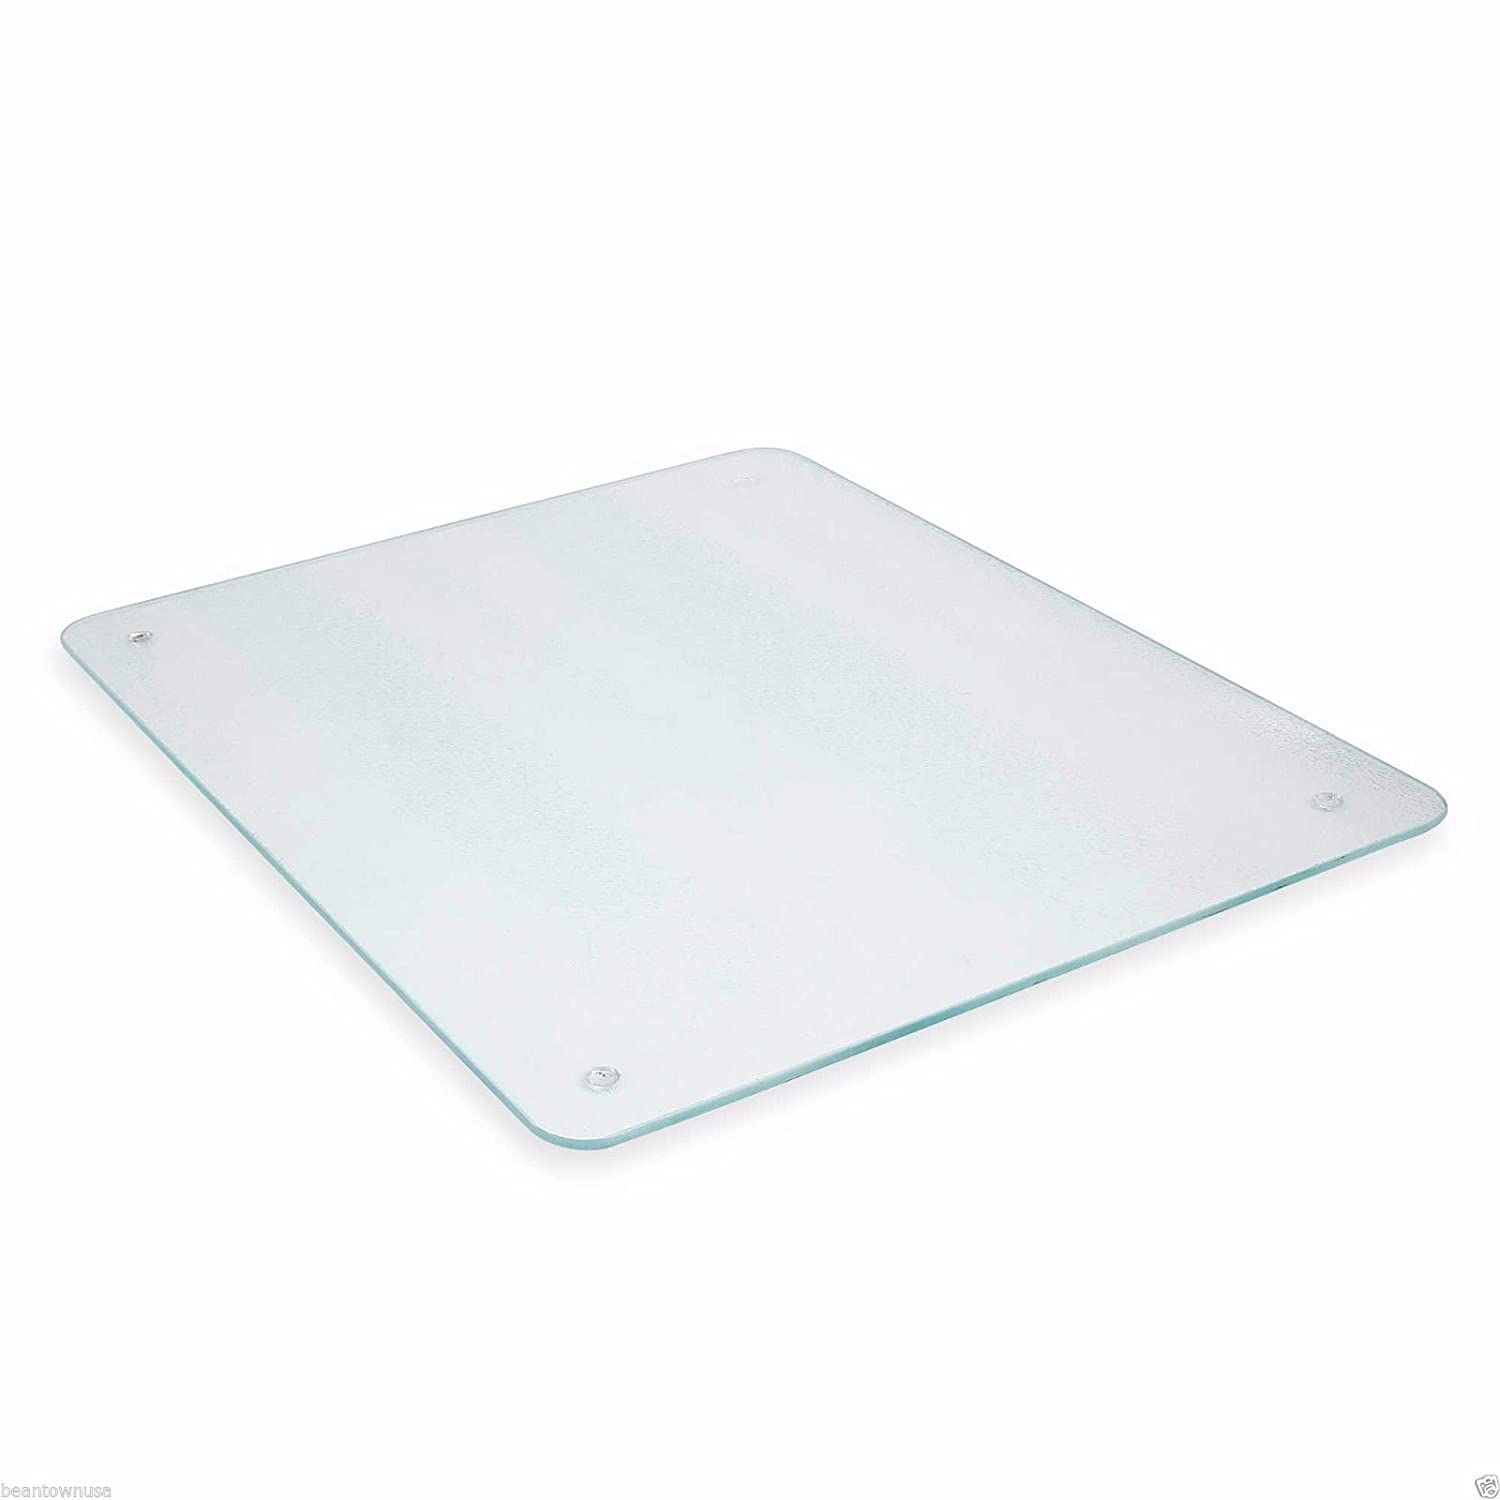 com counter or countertop gap black stove white protector of walmart set clear silicone covers evelots ip